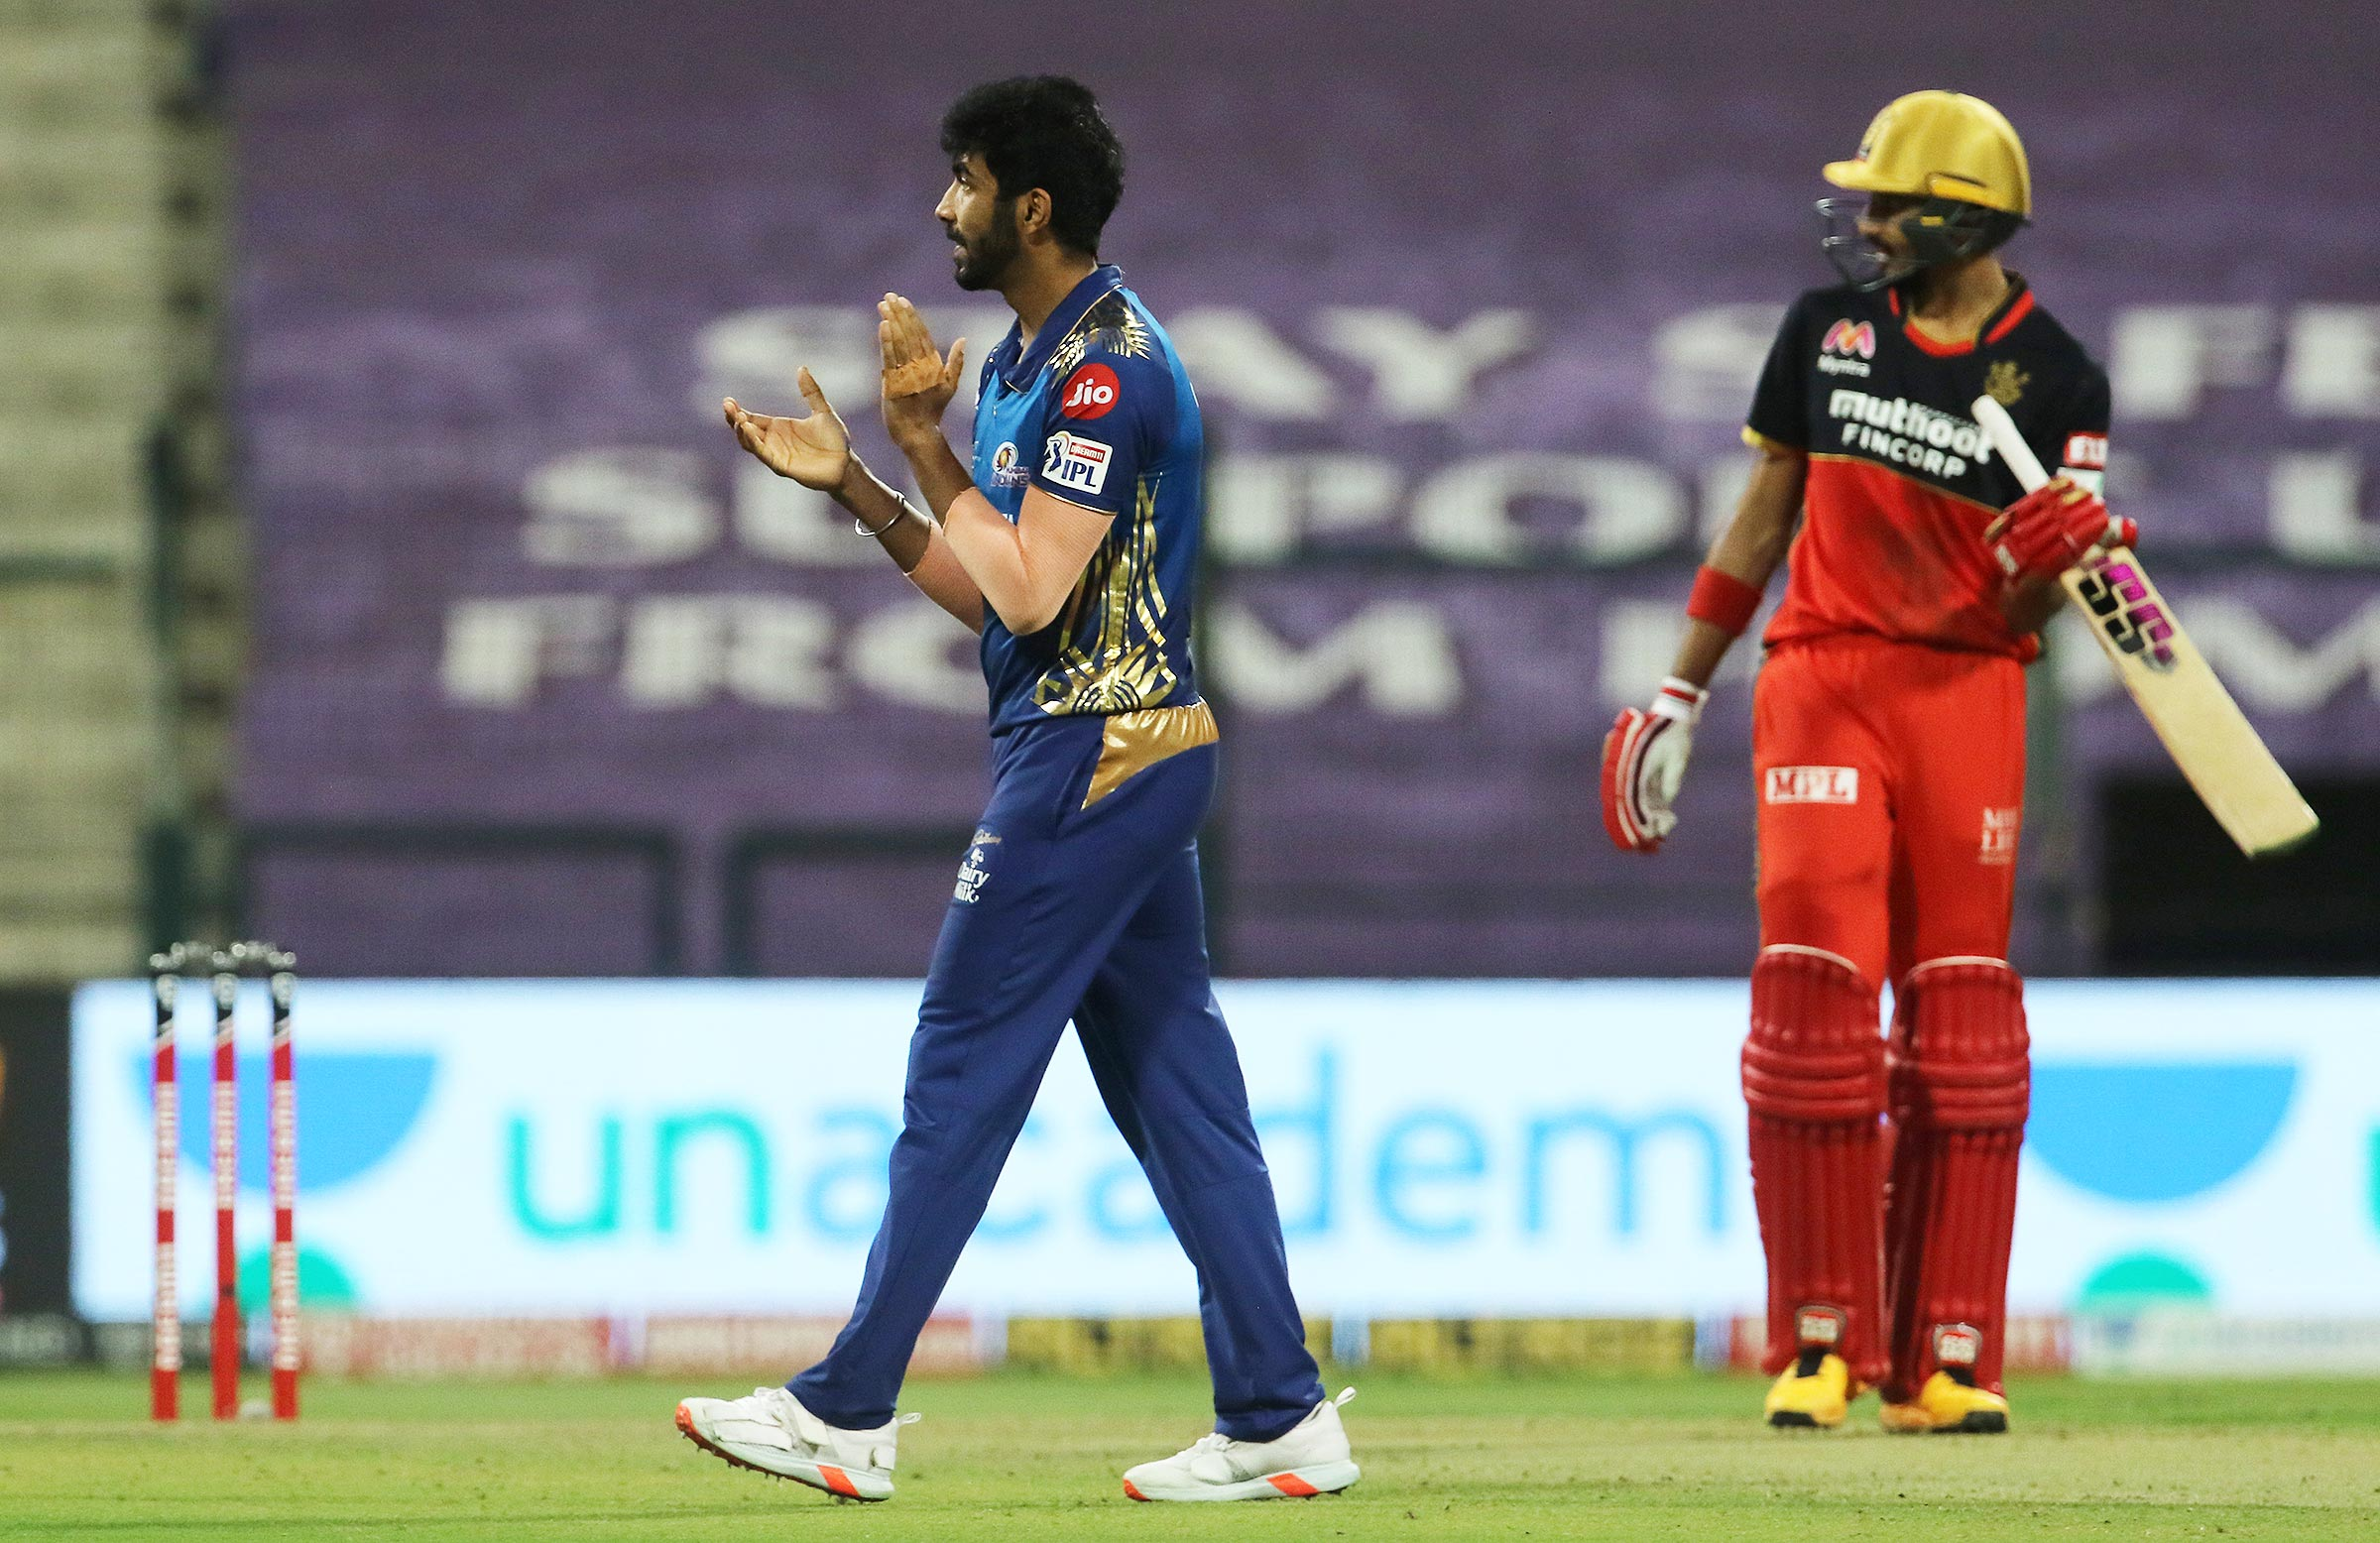 Bumrah proved to be the difference with the ball // IPL-BCCI